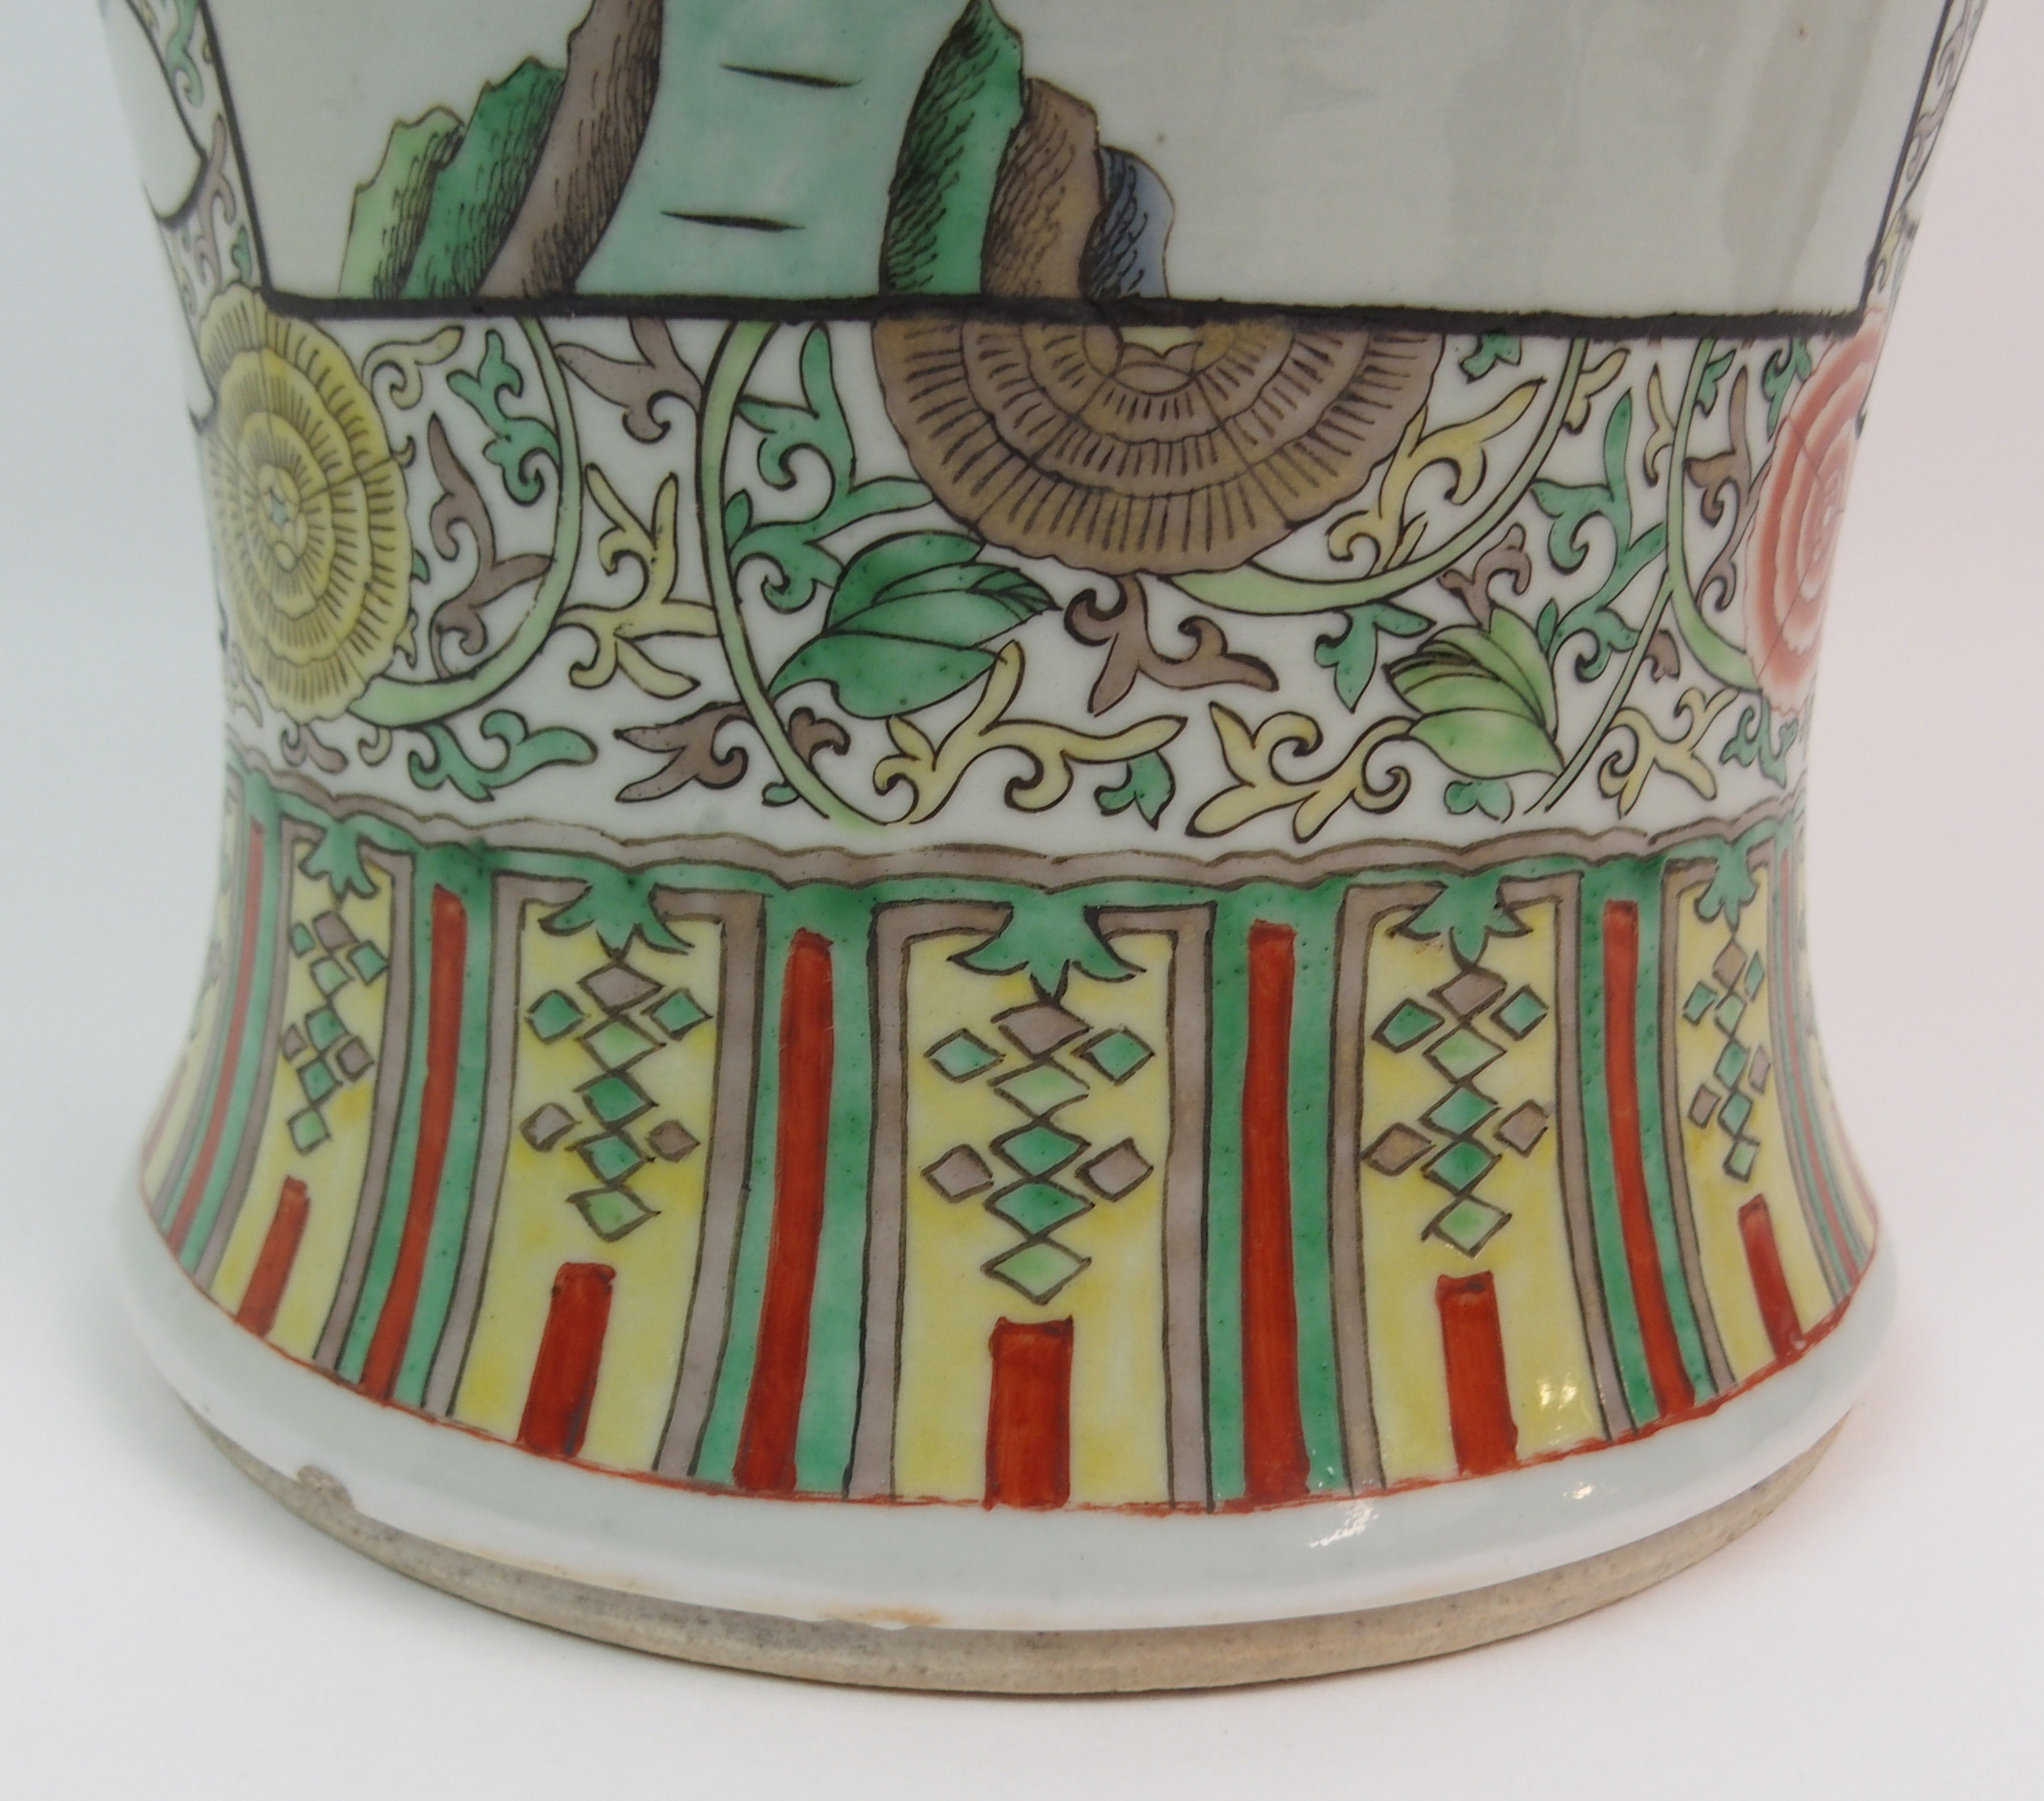 A CHINESE FAMILLE VERTE LARGE BALUSTER VASE painted with panels of figures surrounded by flowers and - Image 4 of 10